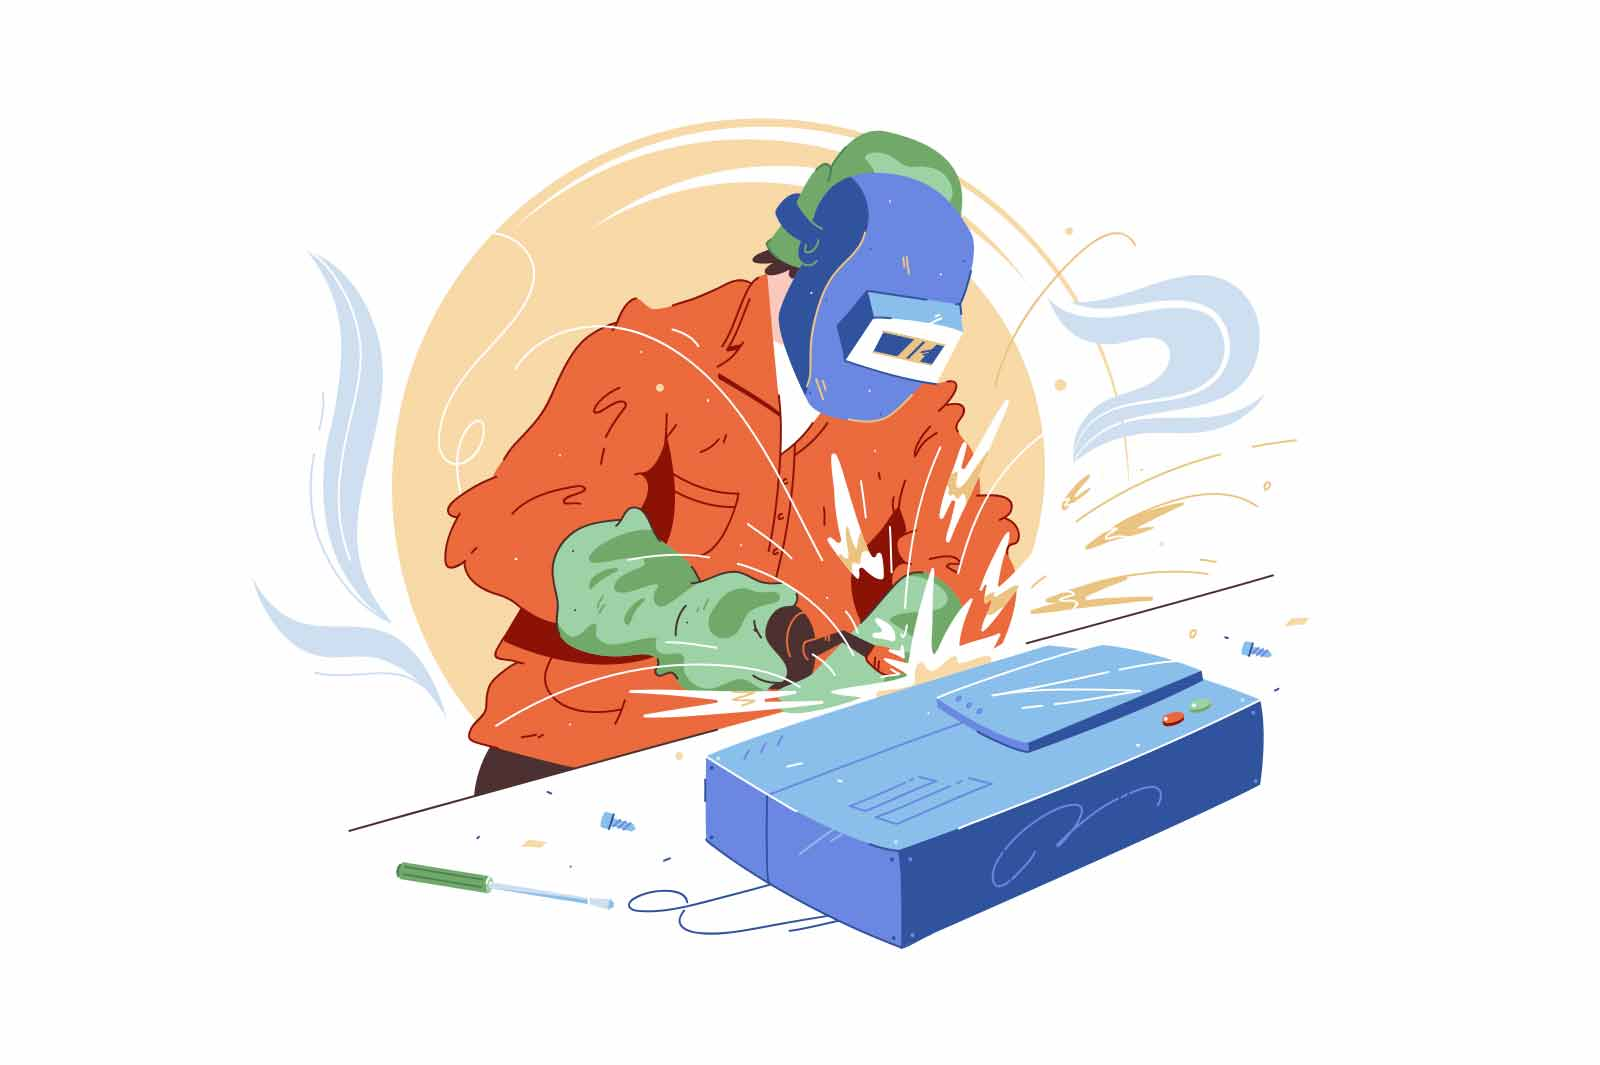 Welder character with welding tool vector illustration. Man in welding mask, jumpsuit and gloves flat style. Handyman, fixer concept